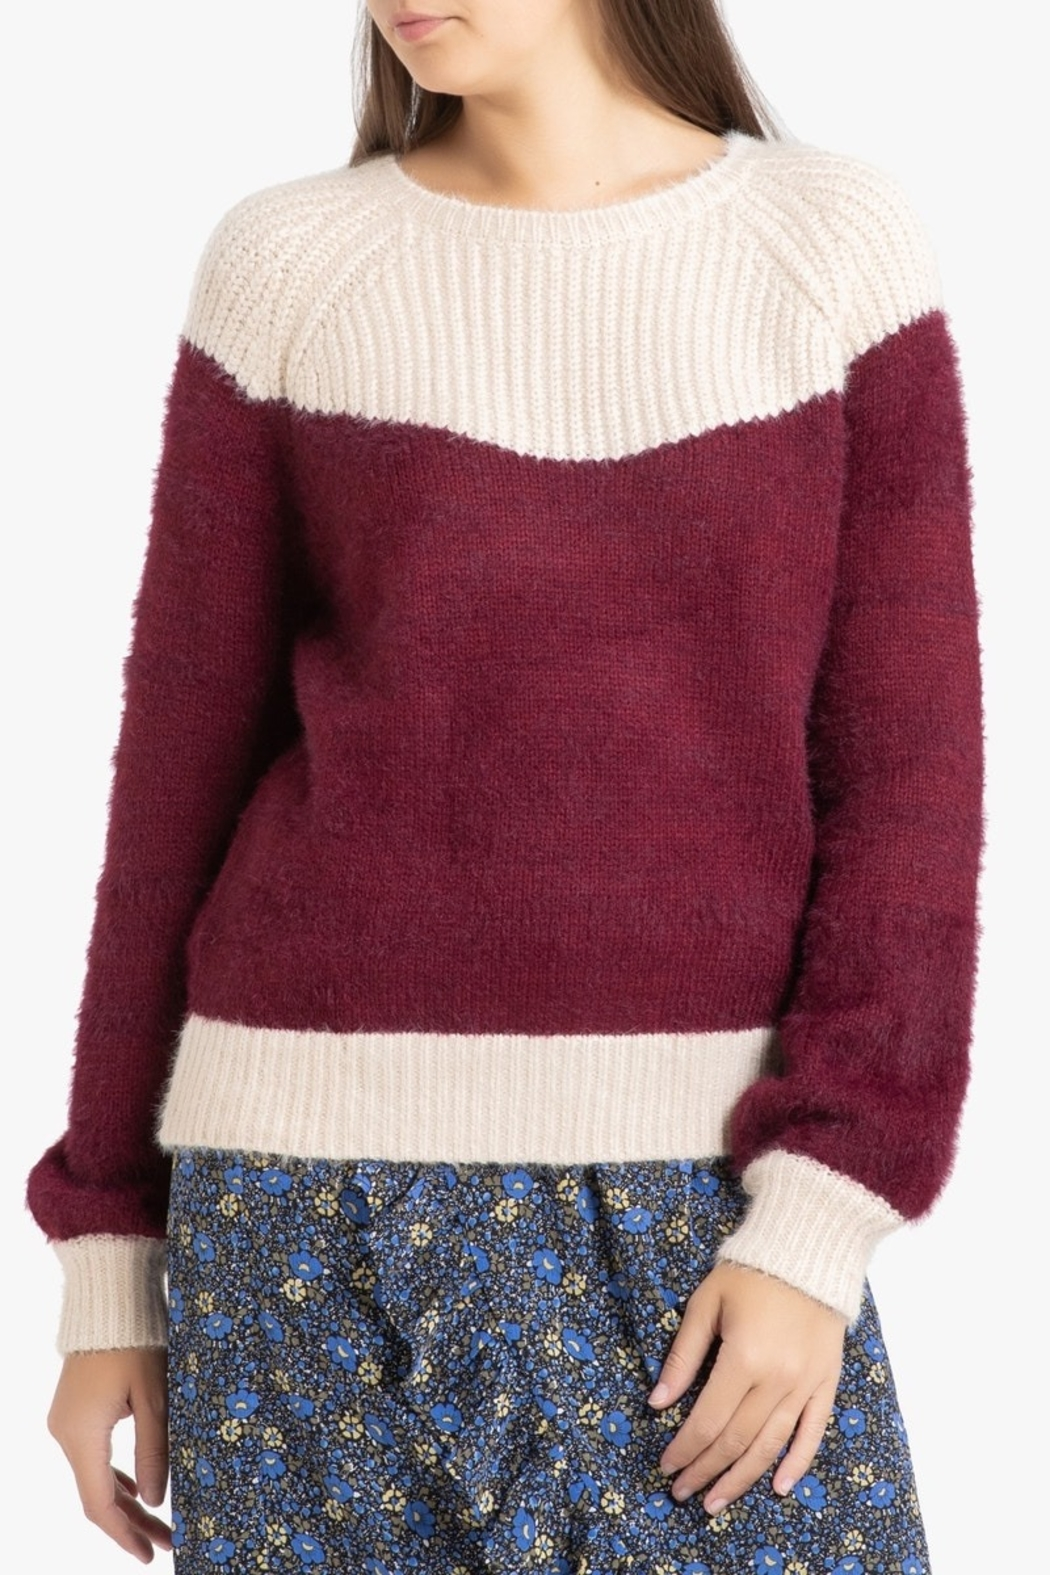 FRNCH Two-tone Nigelle Sweater - Main Image